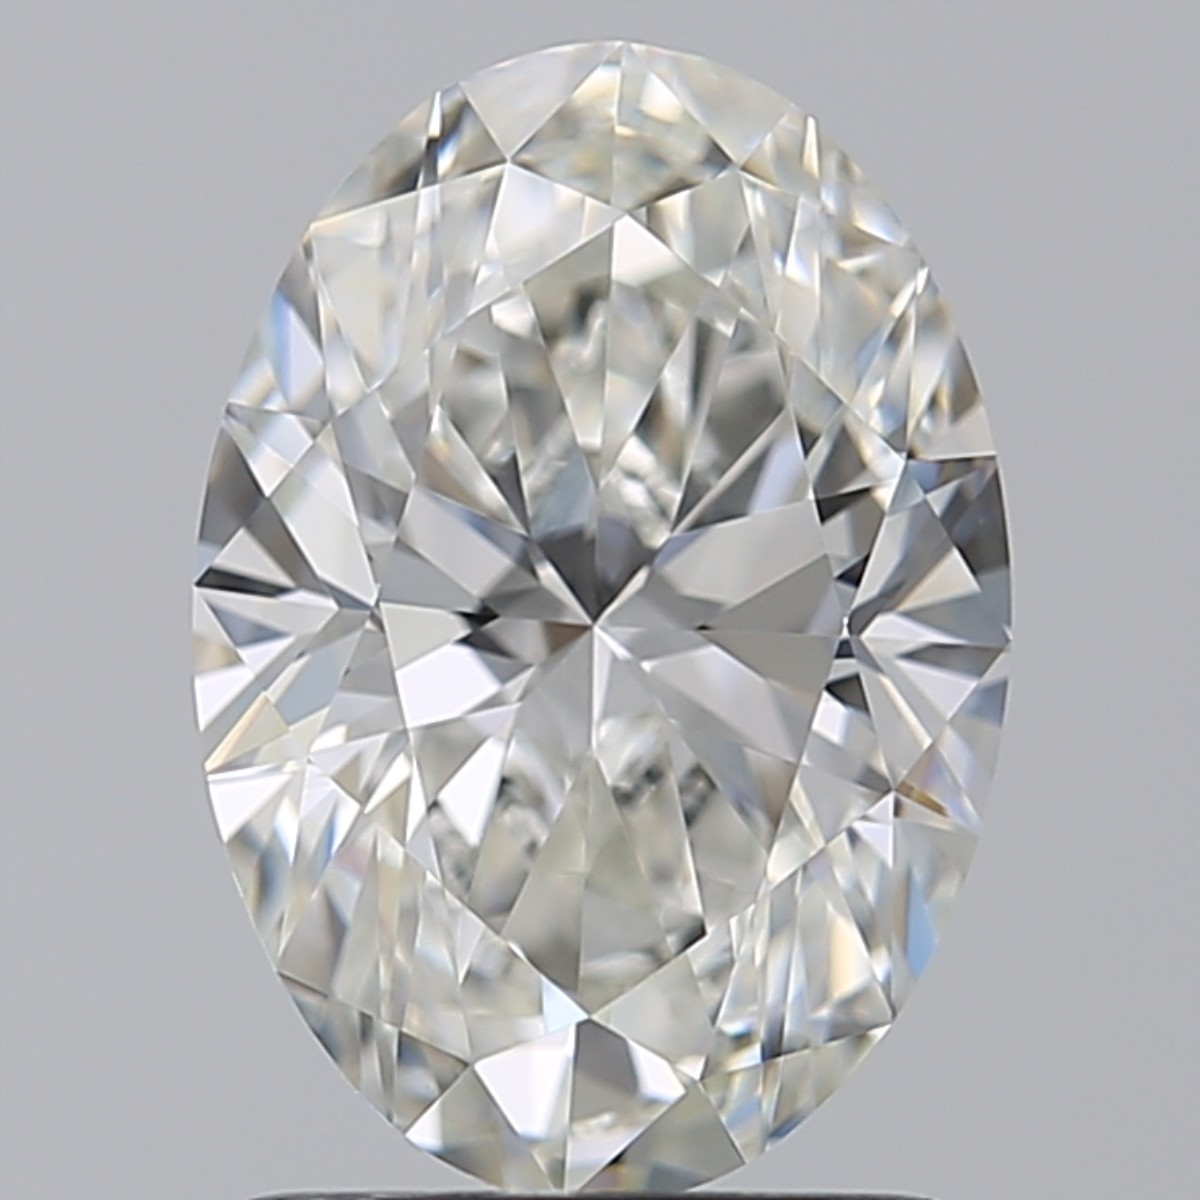 1.71 Carat Oval Diamond (H/VVS2)